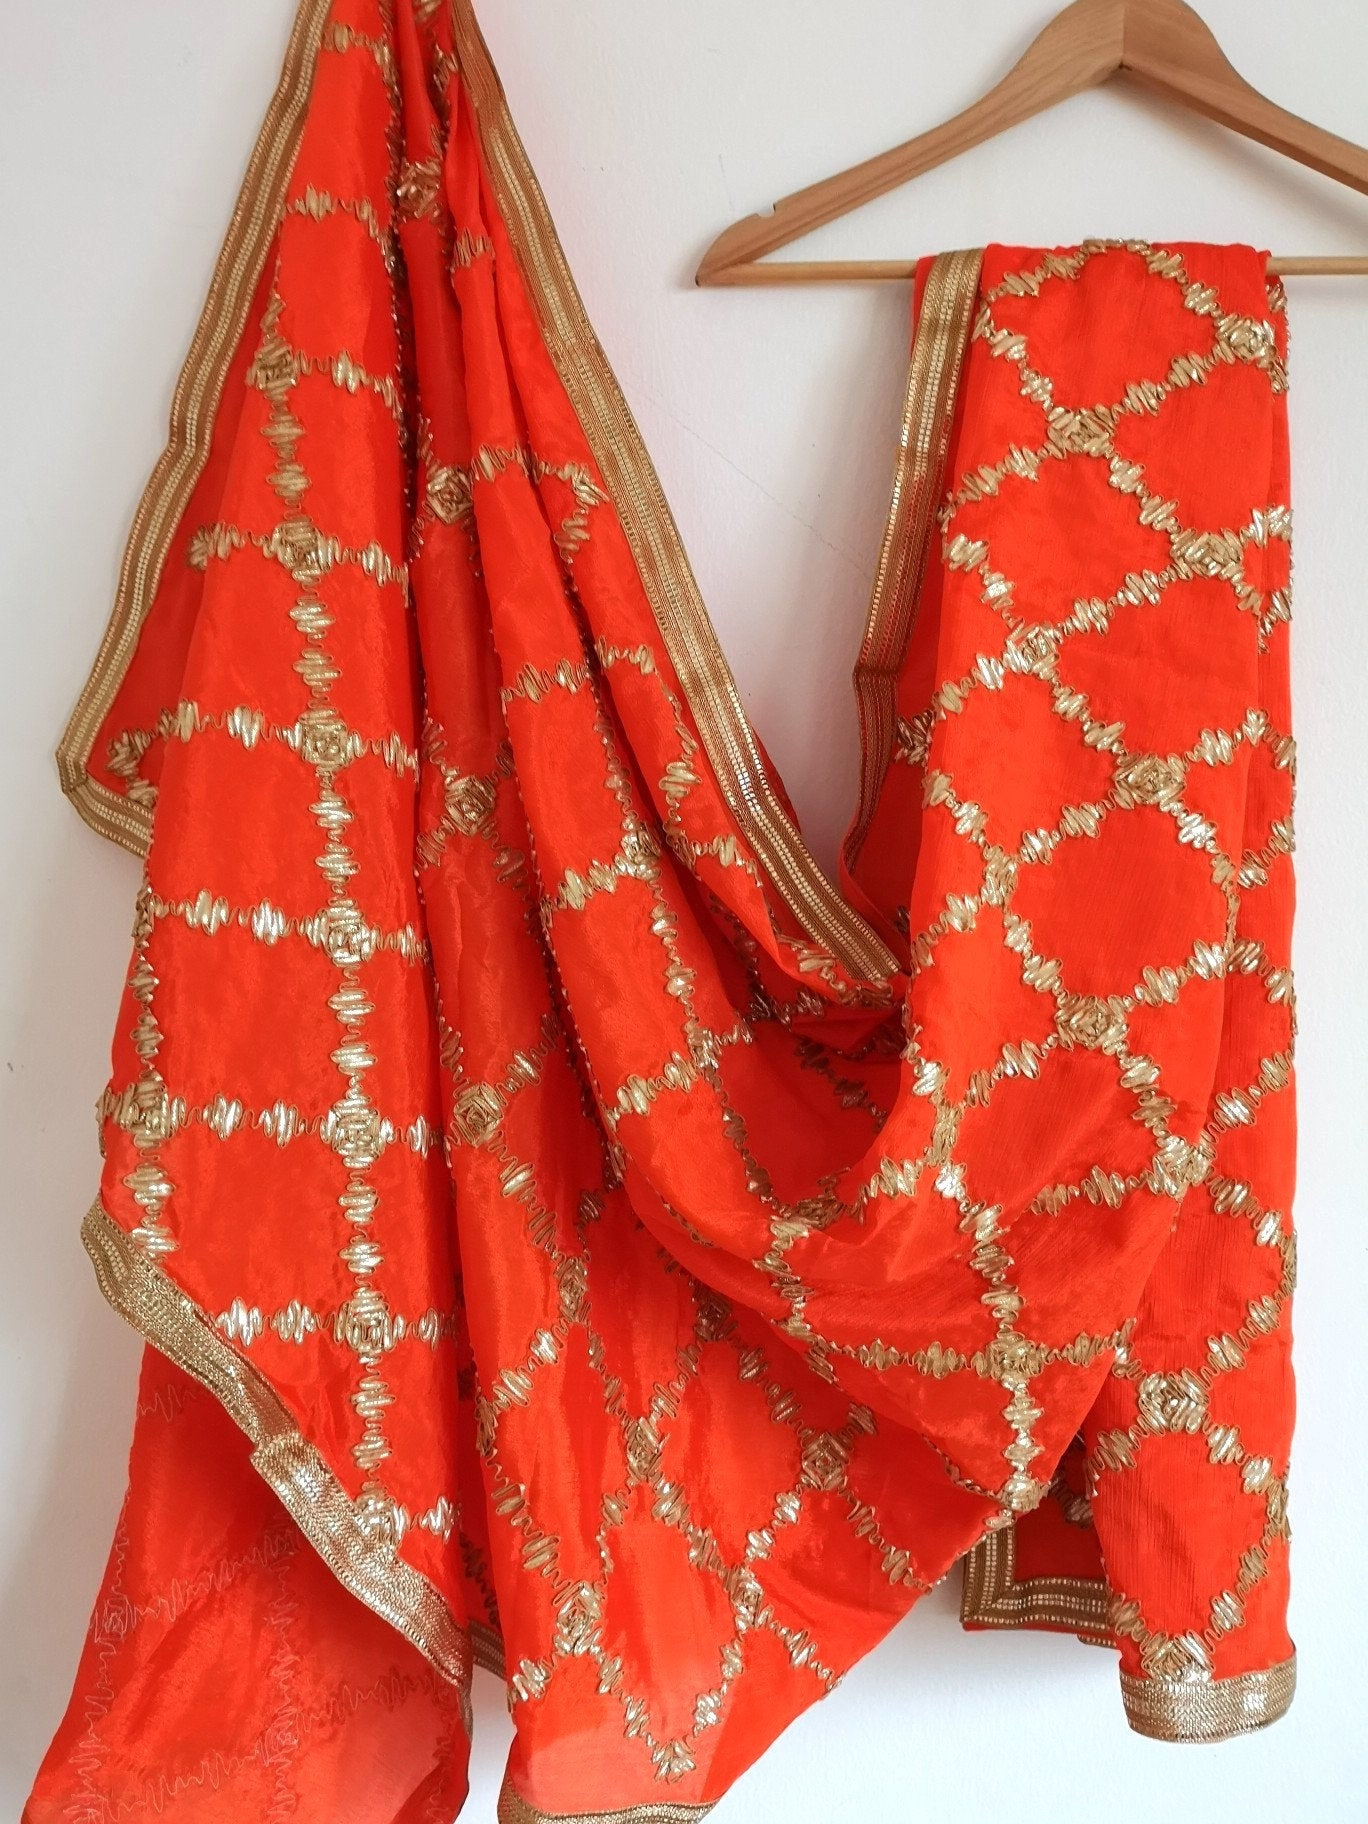 Orange gota patti chinnon / chinon dupatta (scarf), bridal wear, party wear, suit, lehenga, anarkali, bride, bridesmaids - Pink Chunari